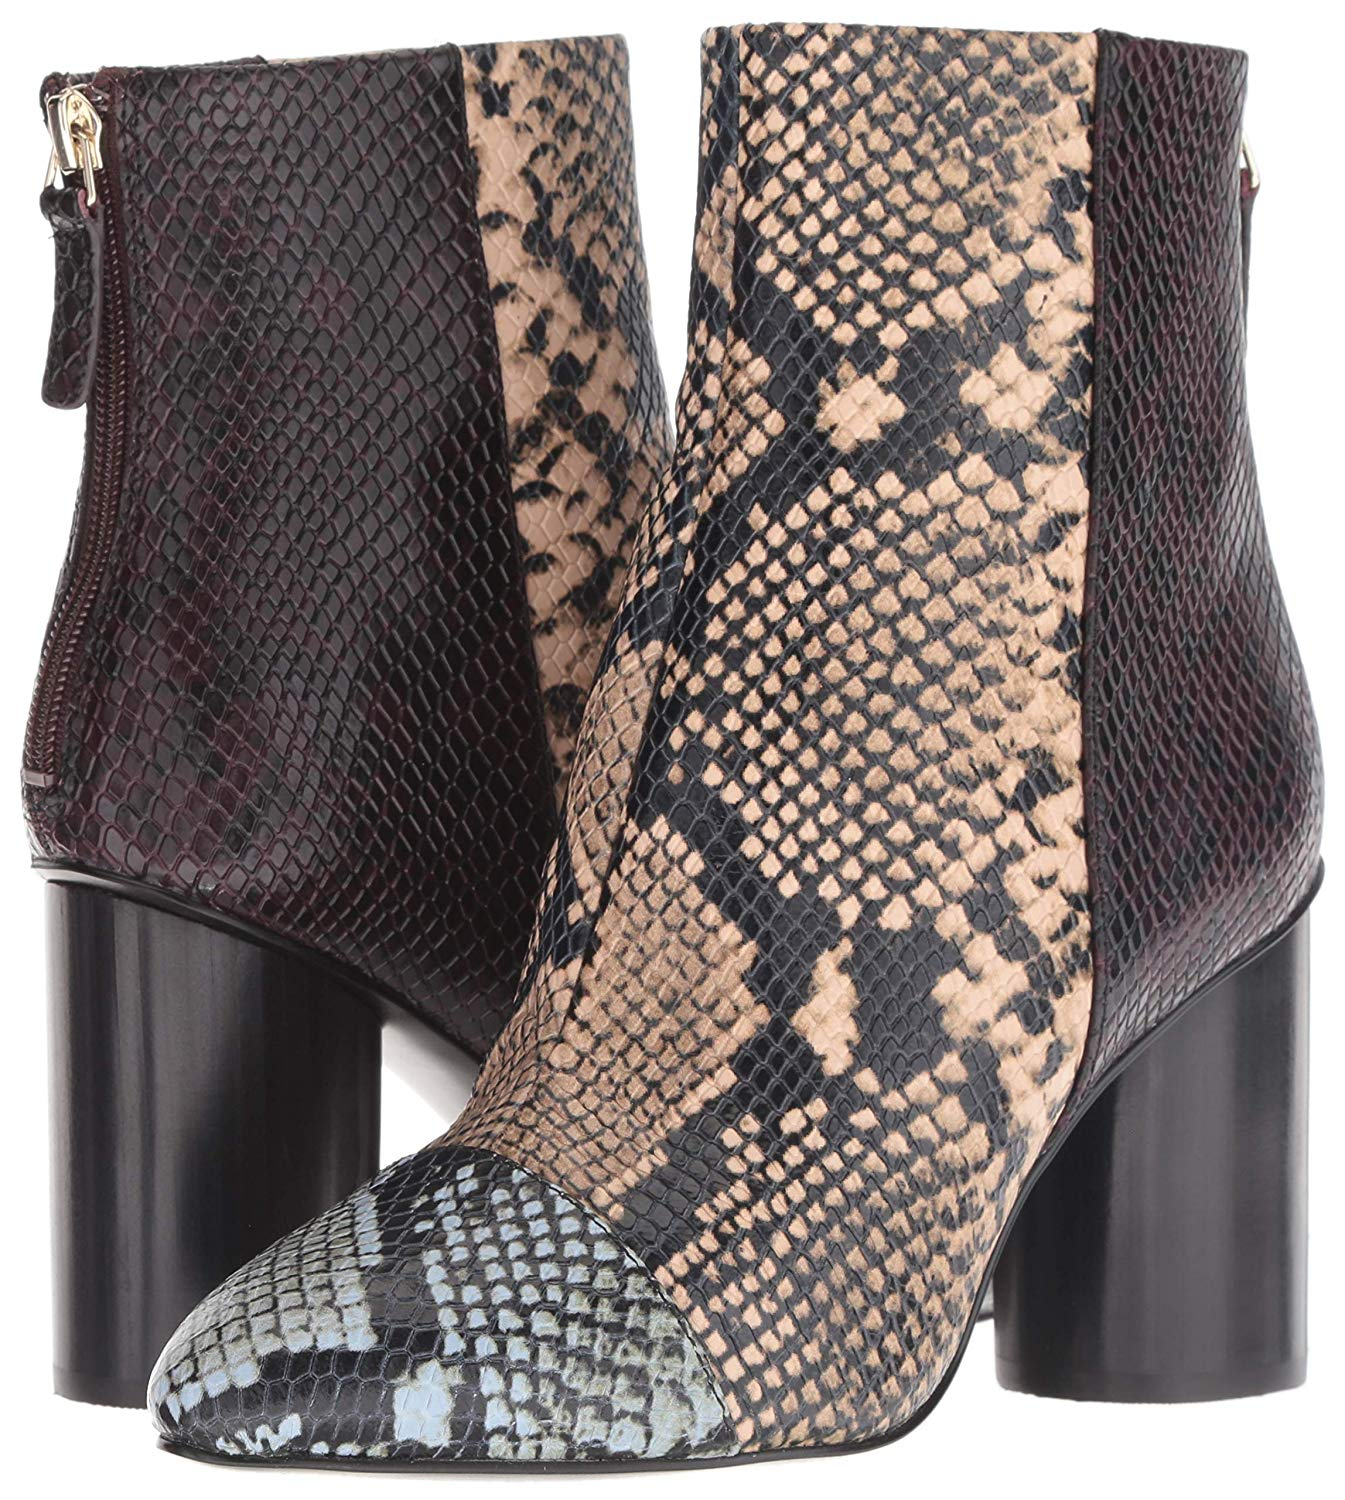 Nine West Cabrillo Reptile Print Ankle Boot Light Natural Multi